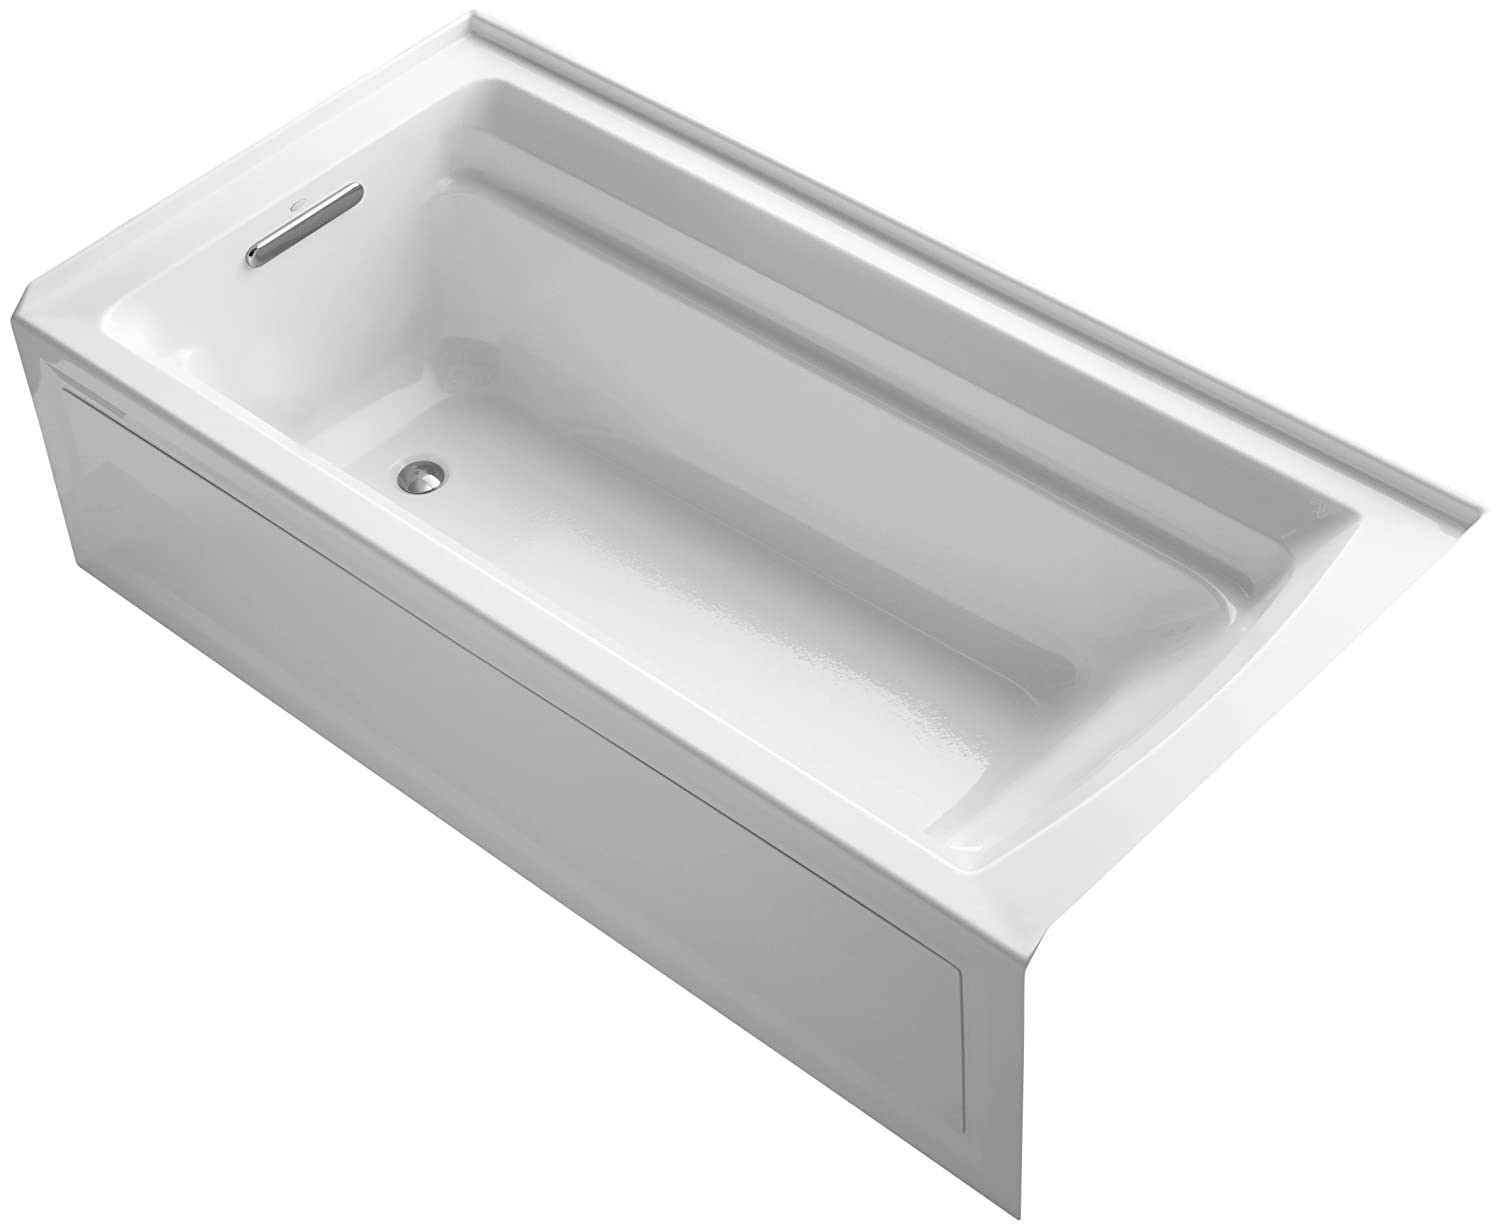 Amazon.com: KOHLER K-1125-LA-0 Archer 6-Foot Bath, White: Home ...